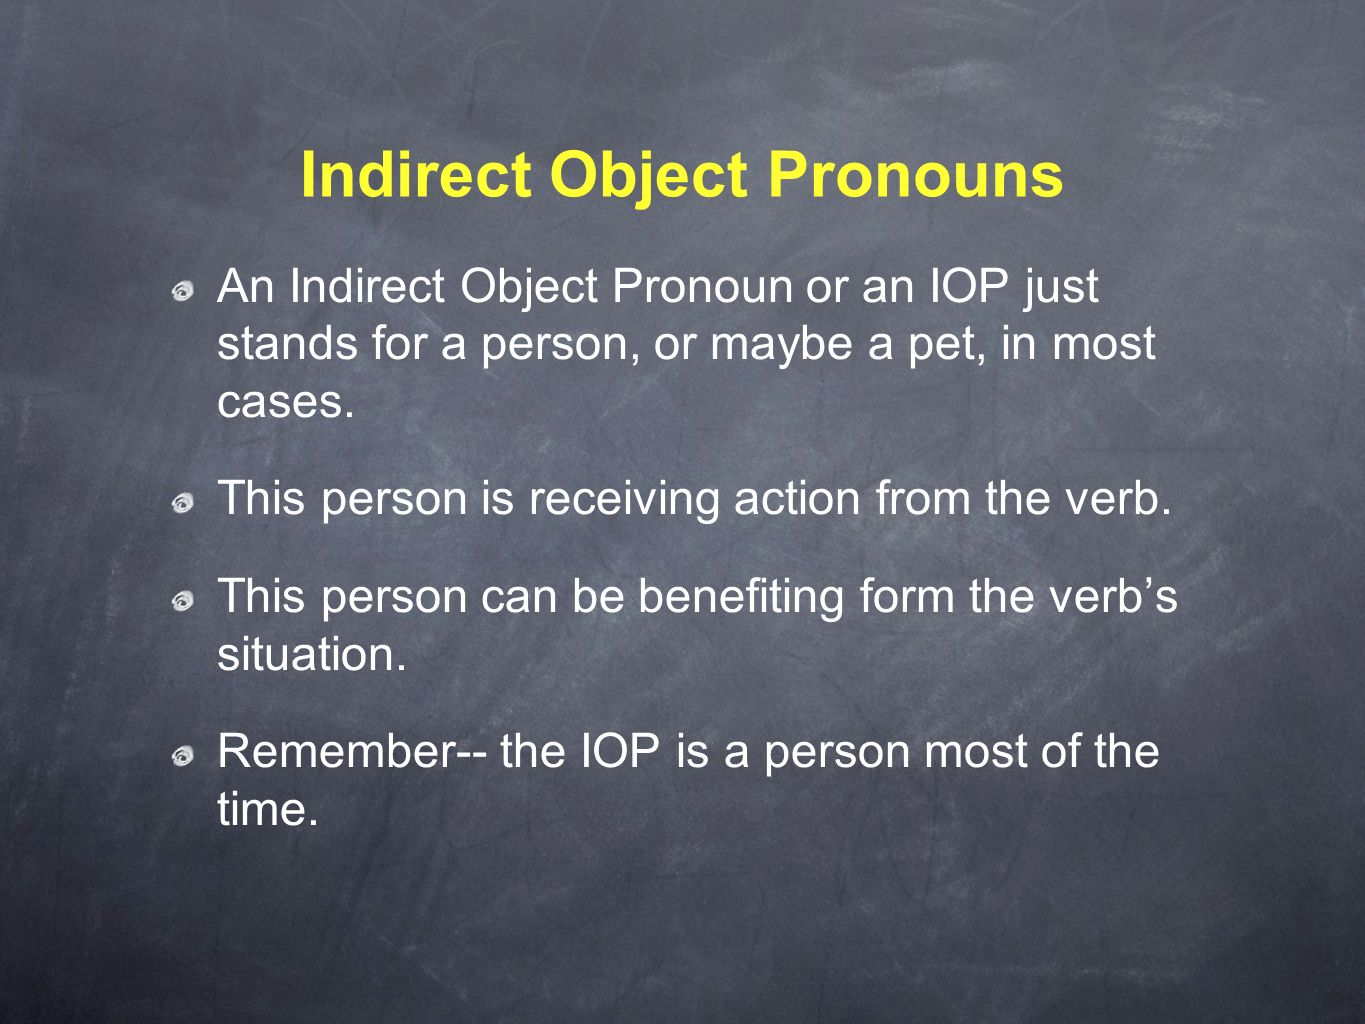 Indirect Object Pronouns An Indirect Object Pronoun or an IOP just stands for a person, or maybe a pet, in most cases. This person is receiving action